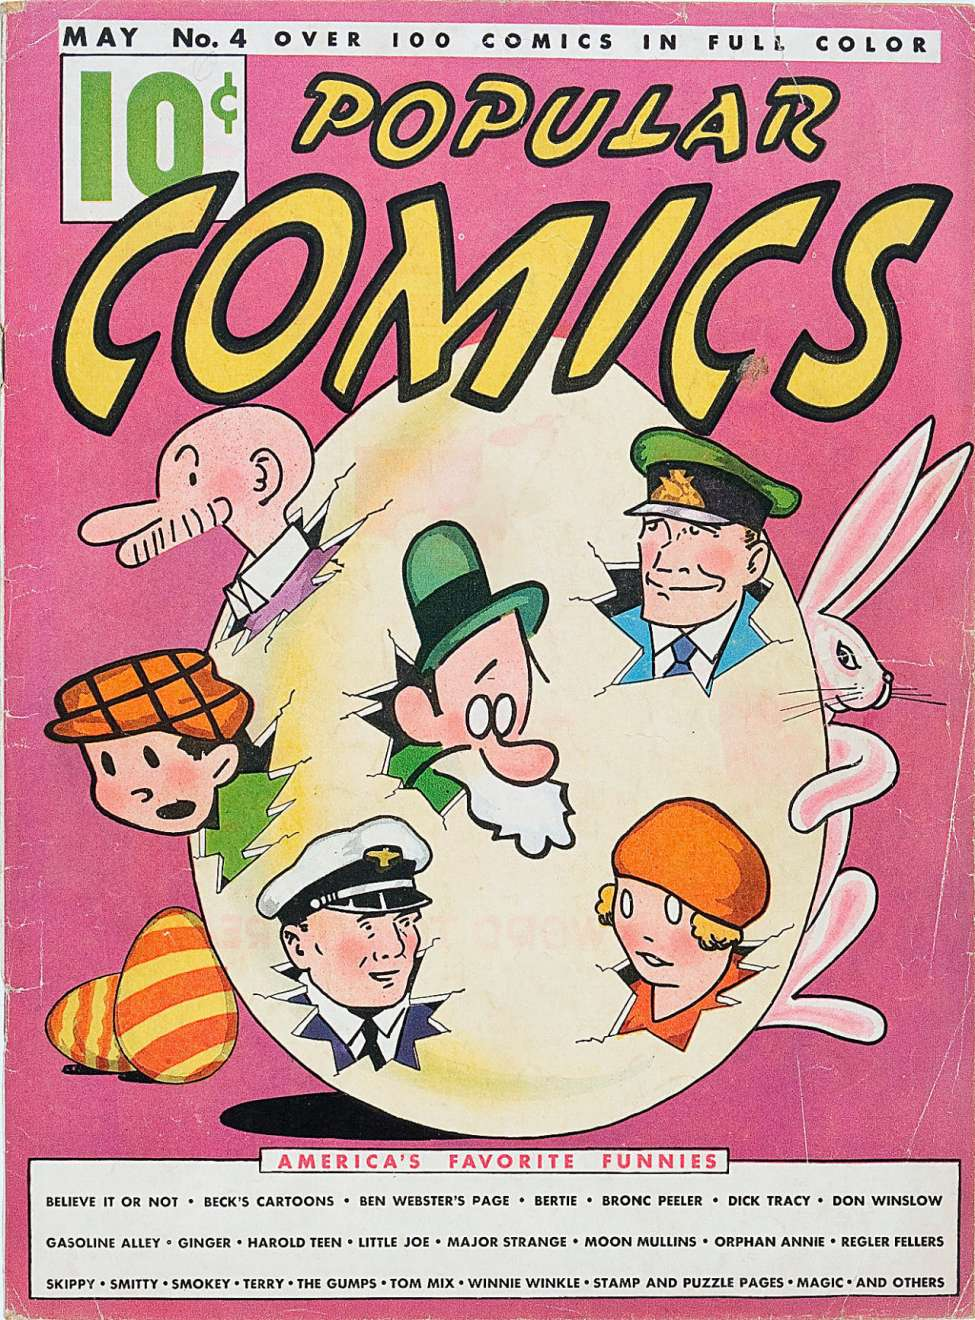 Comic Book Cover For Popular Comics #4